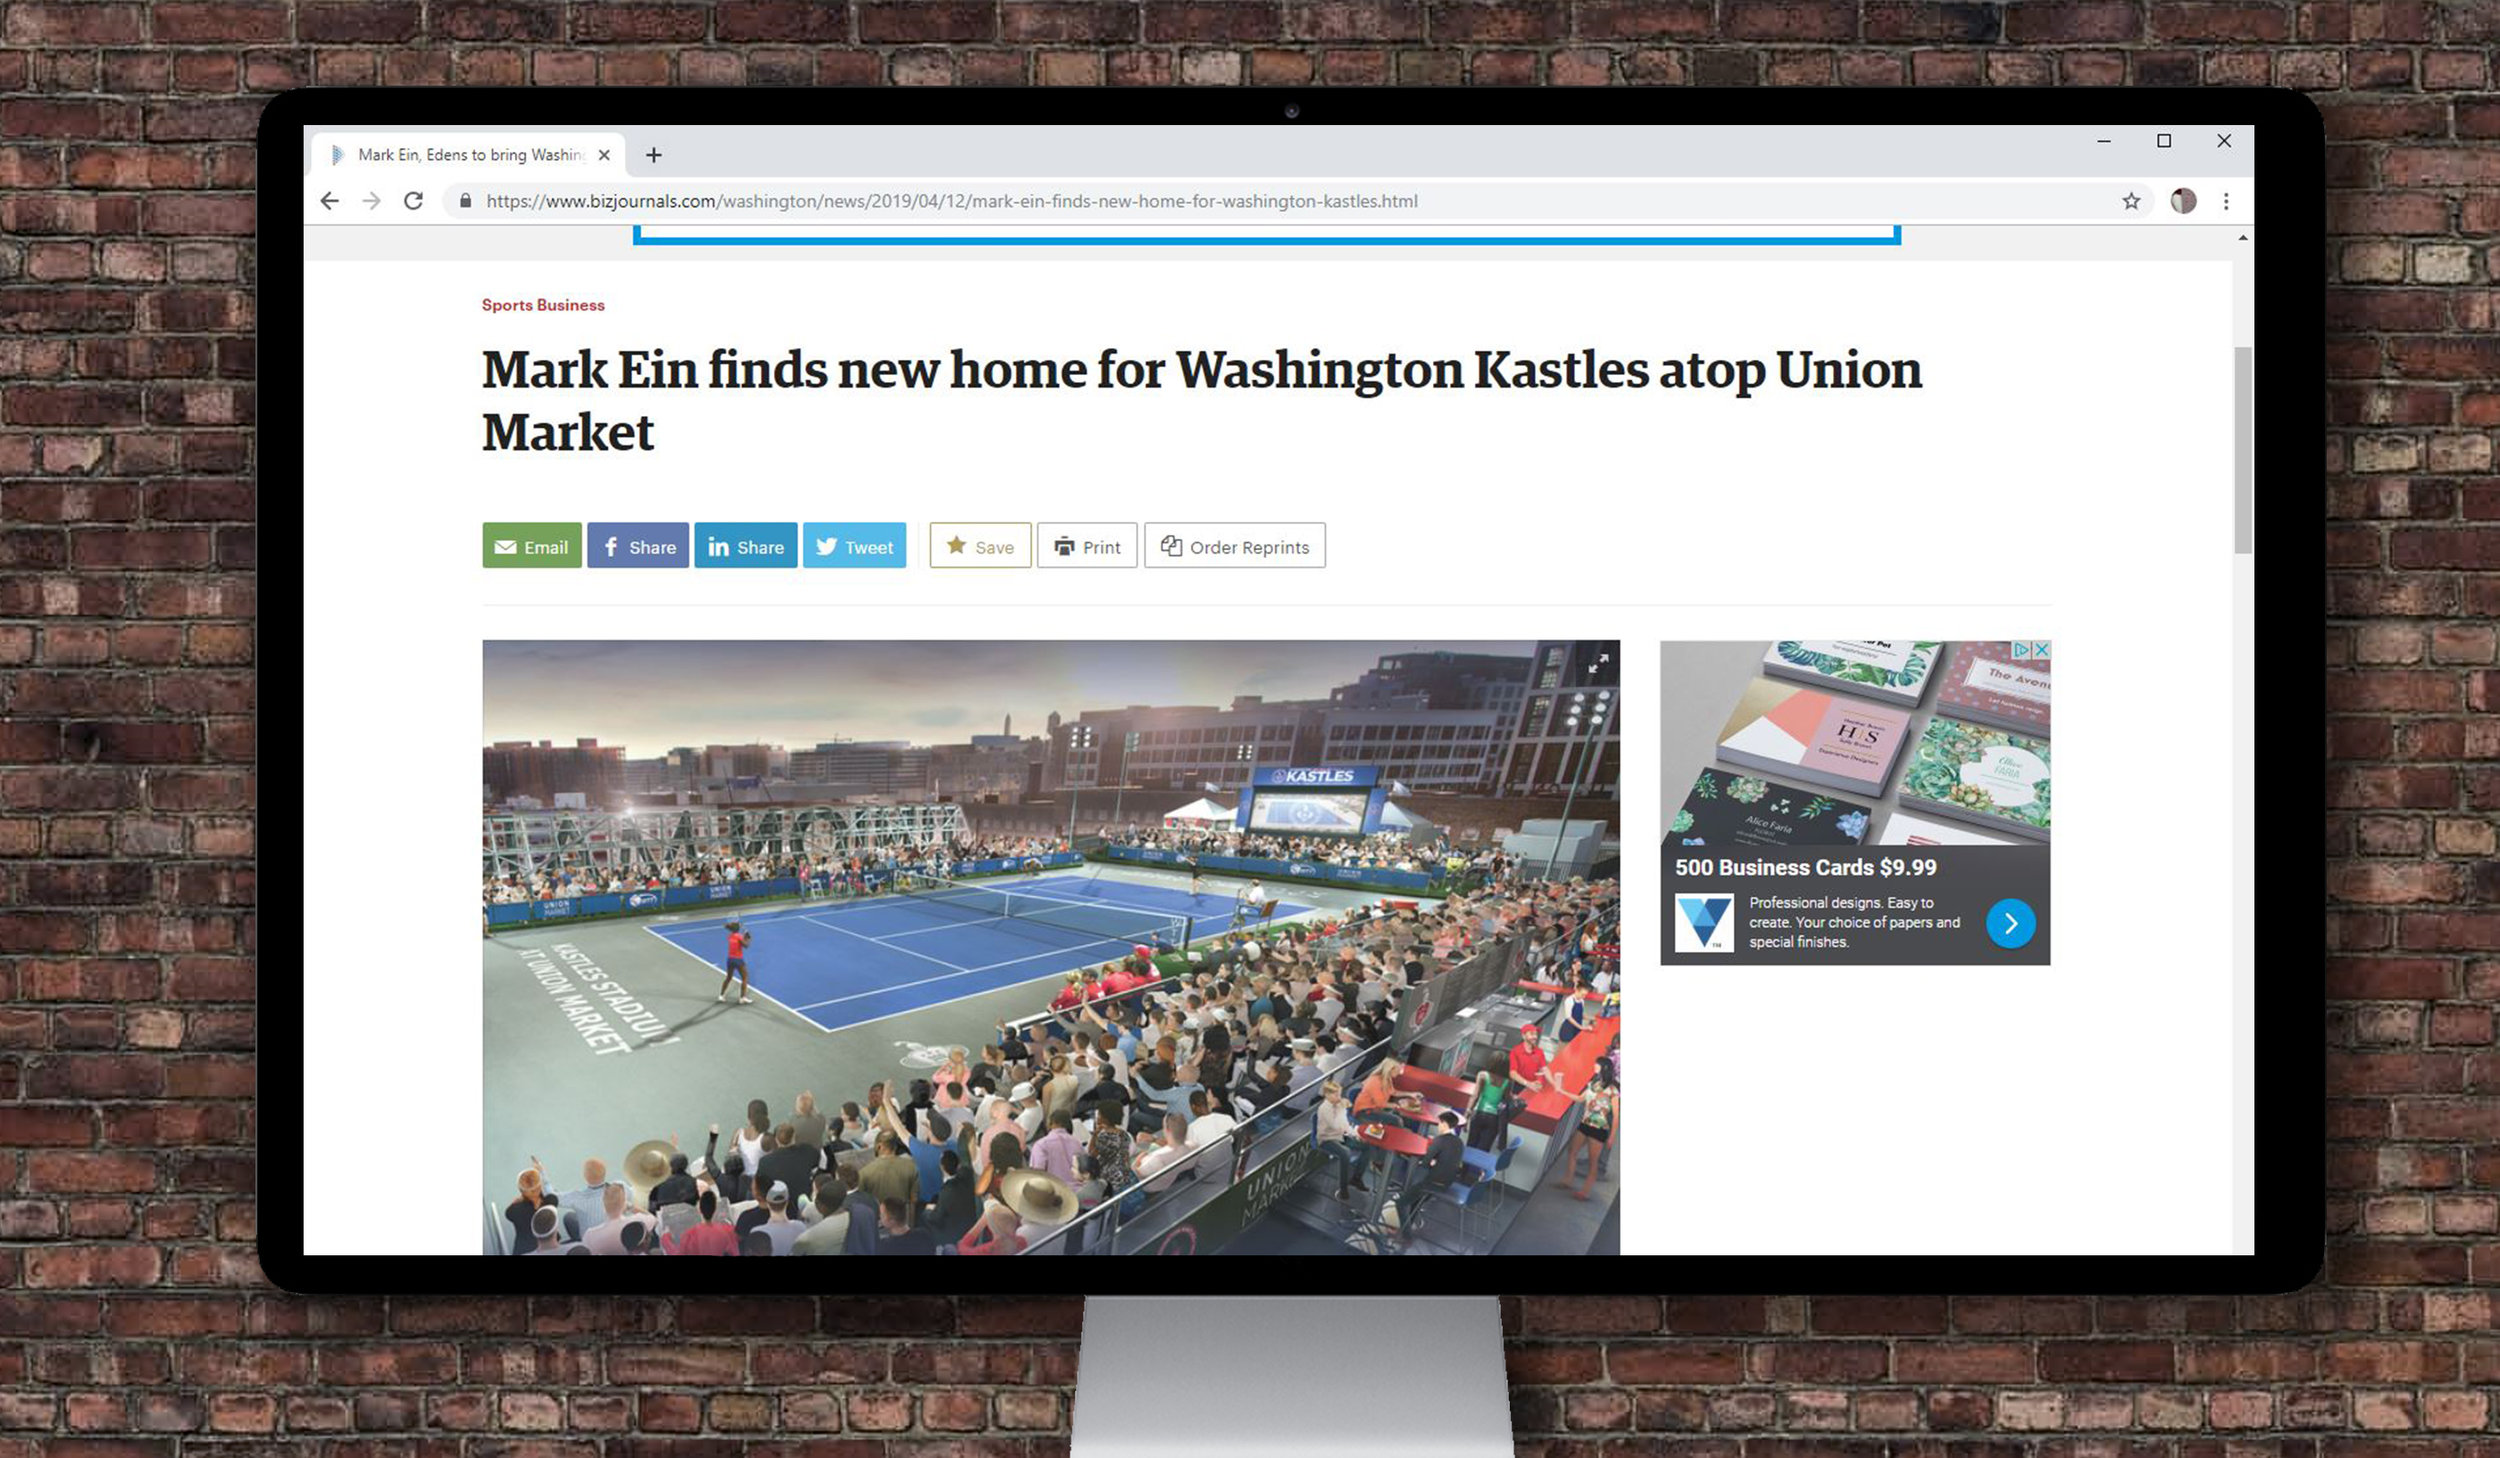 Announcement of the new tennis court on BizJournals.com